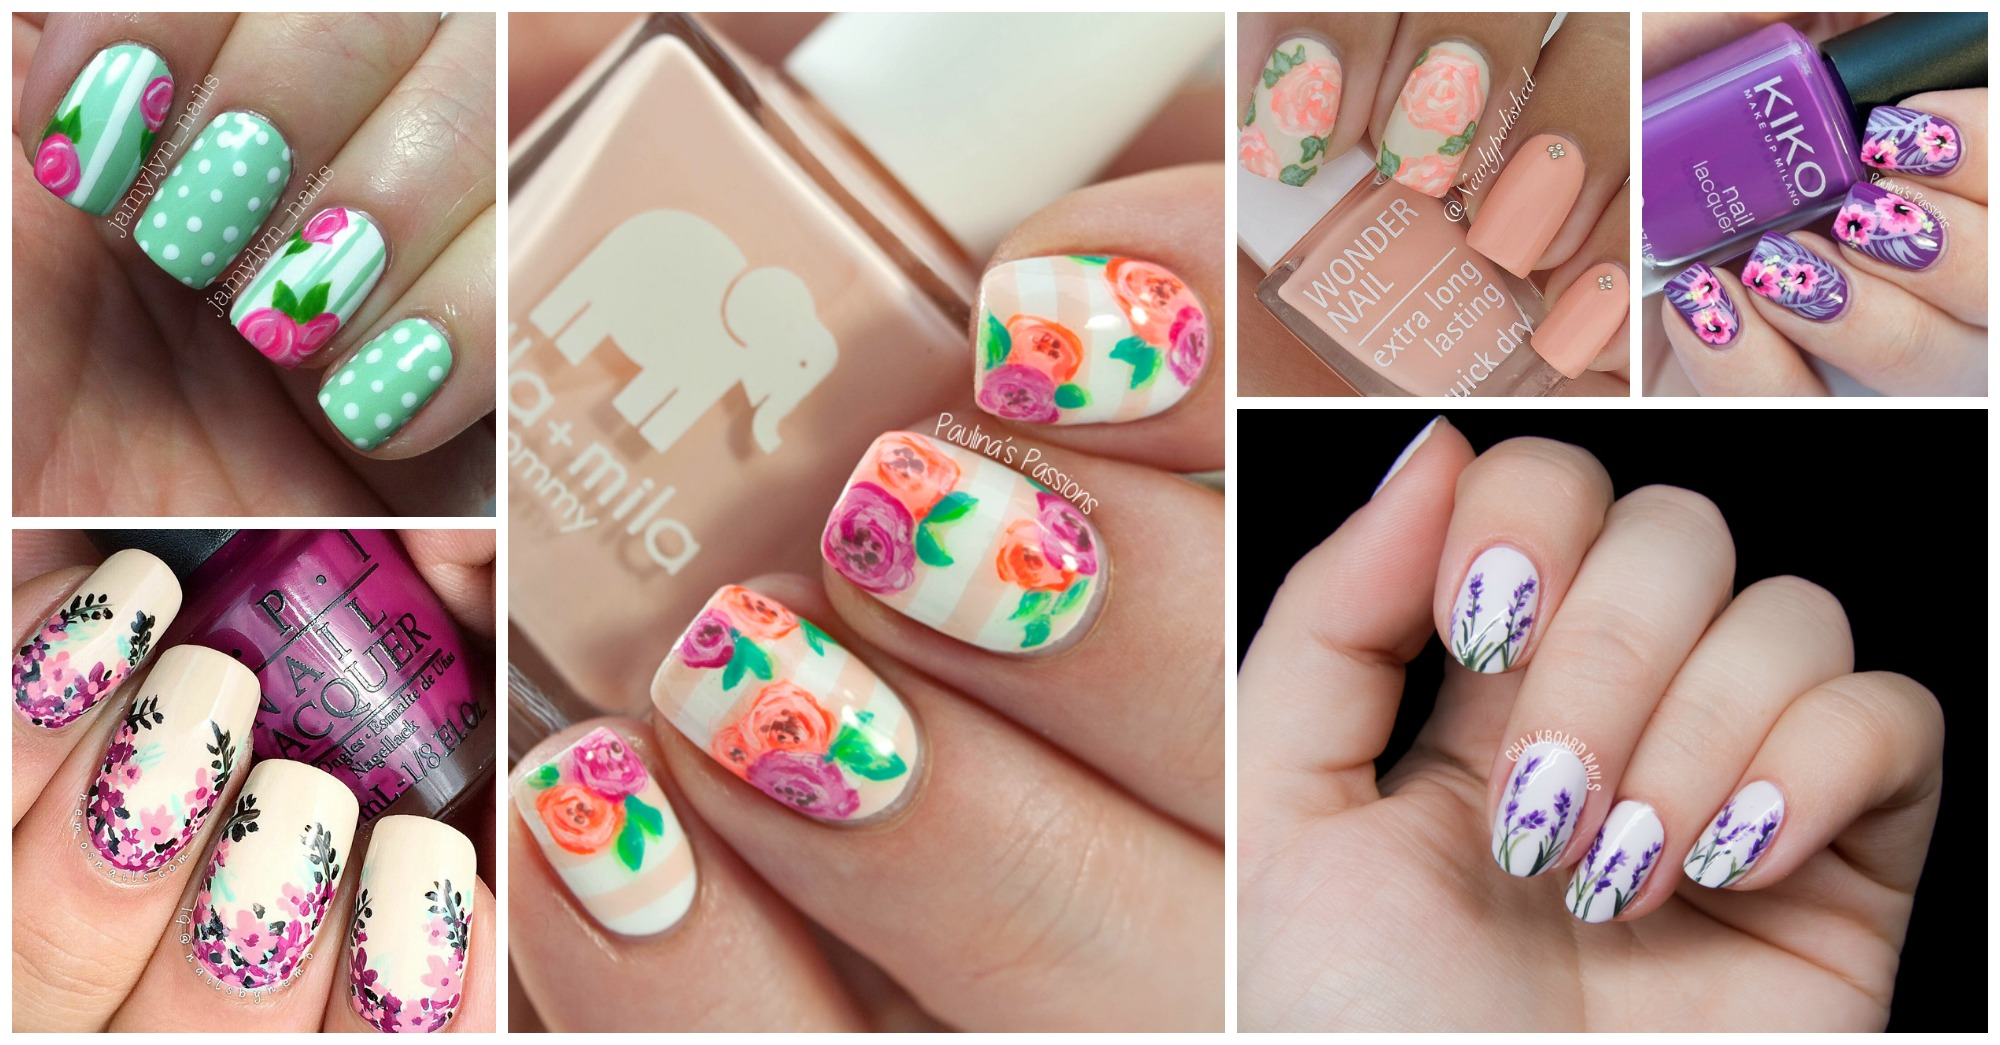 15 Stupendous Floral Nail Designs to Copy This Spring